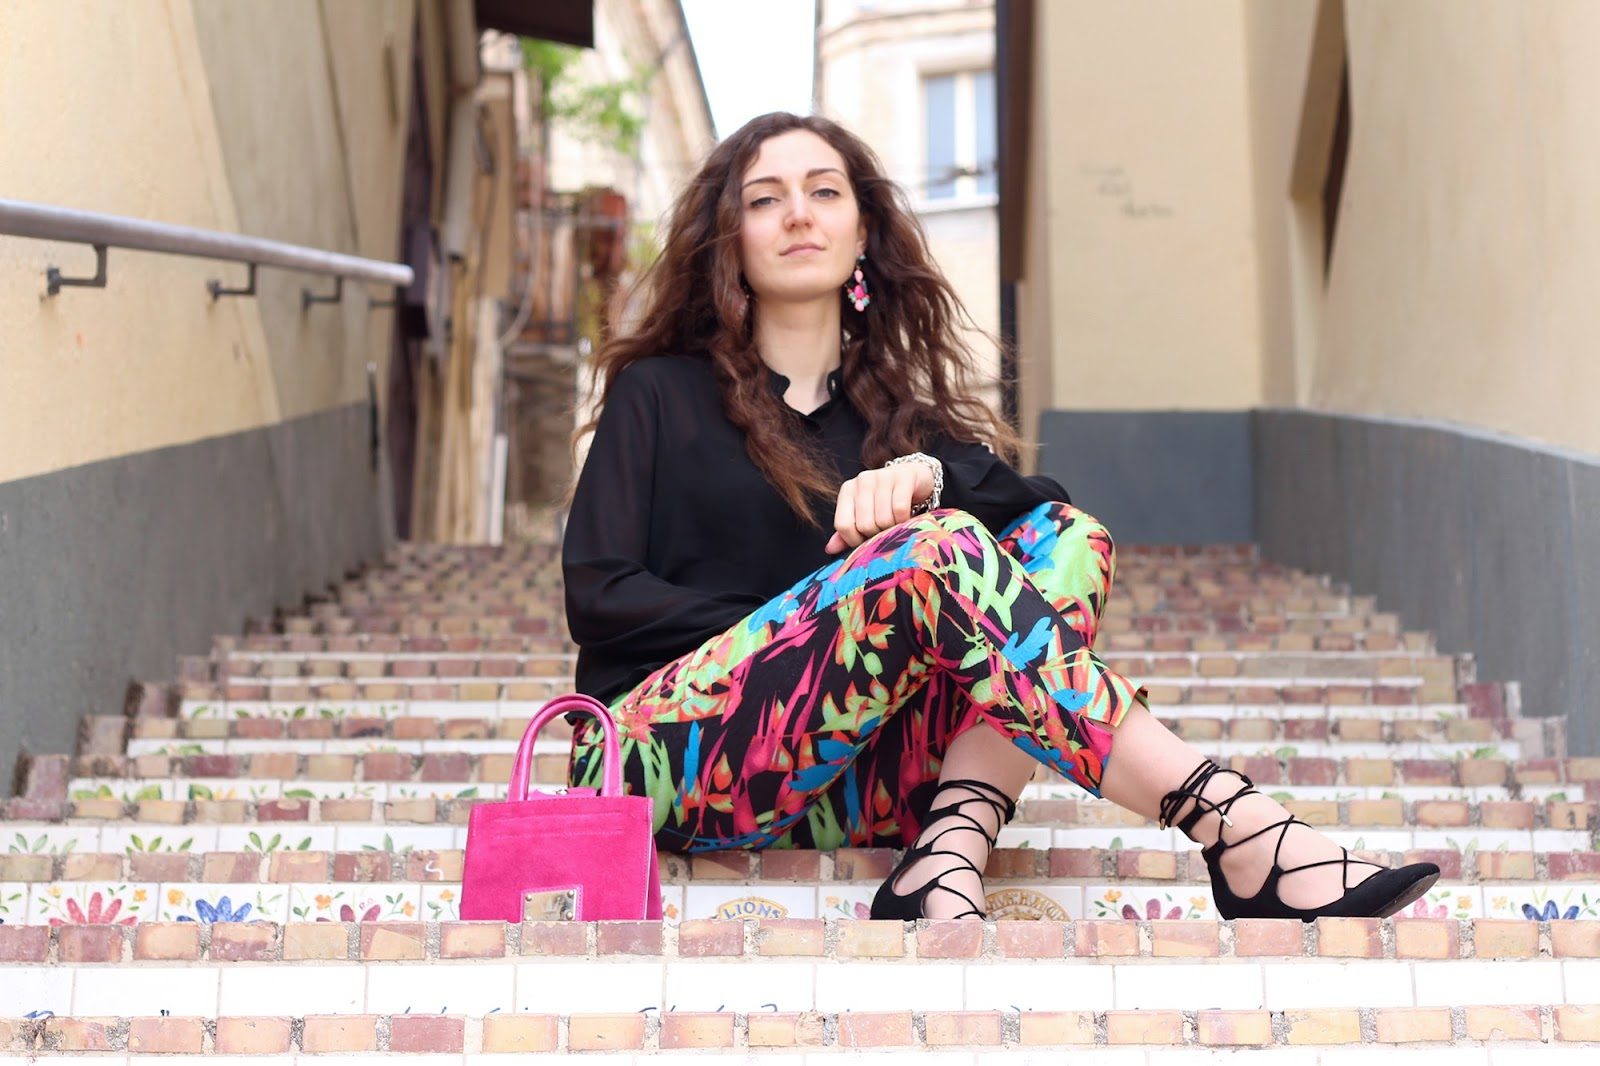 fashion style blogger italian girl italy vogue glamour pescara vasto goa goa pant colors zara heels sandals shoes scarpe